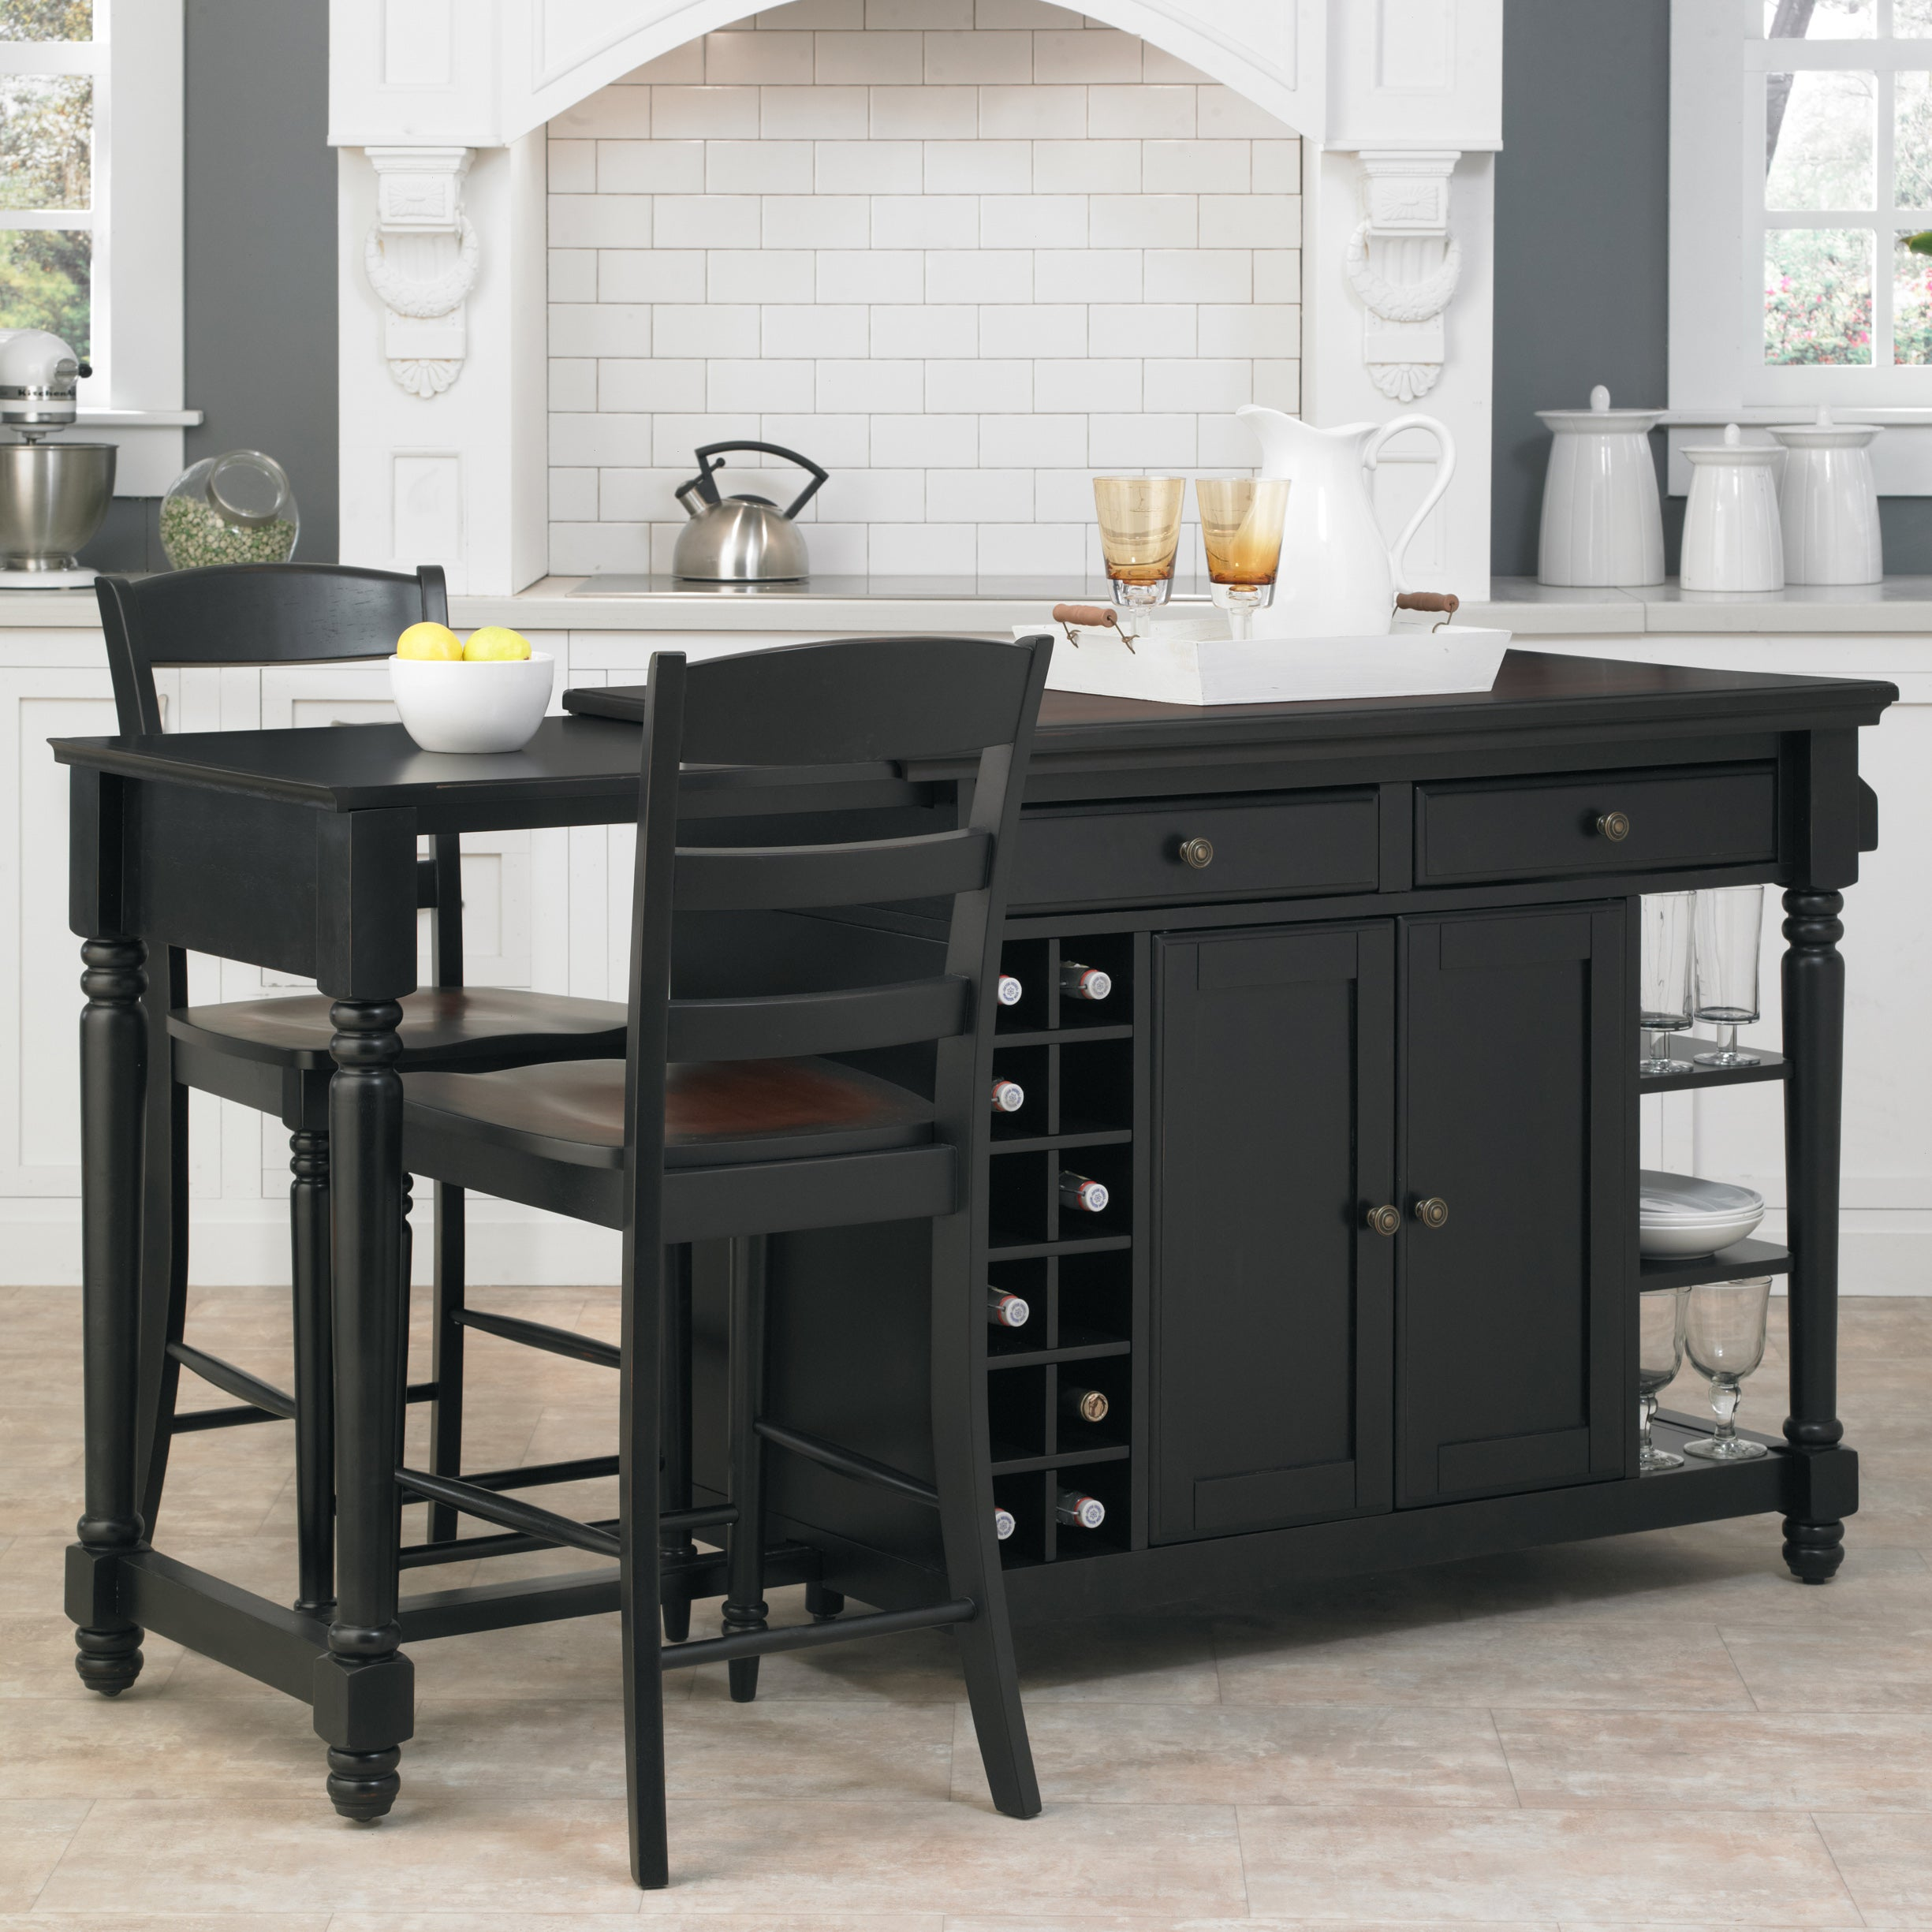 Shop Gracewood Hollow Remarqu Kitchen Island and 2 Stools - Free ...